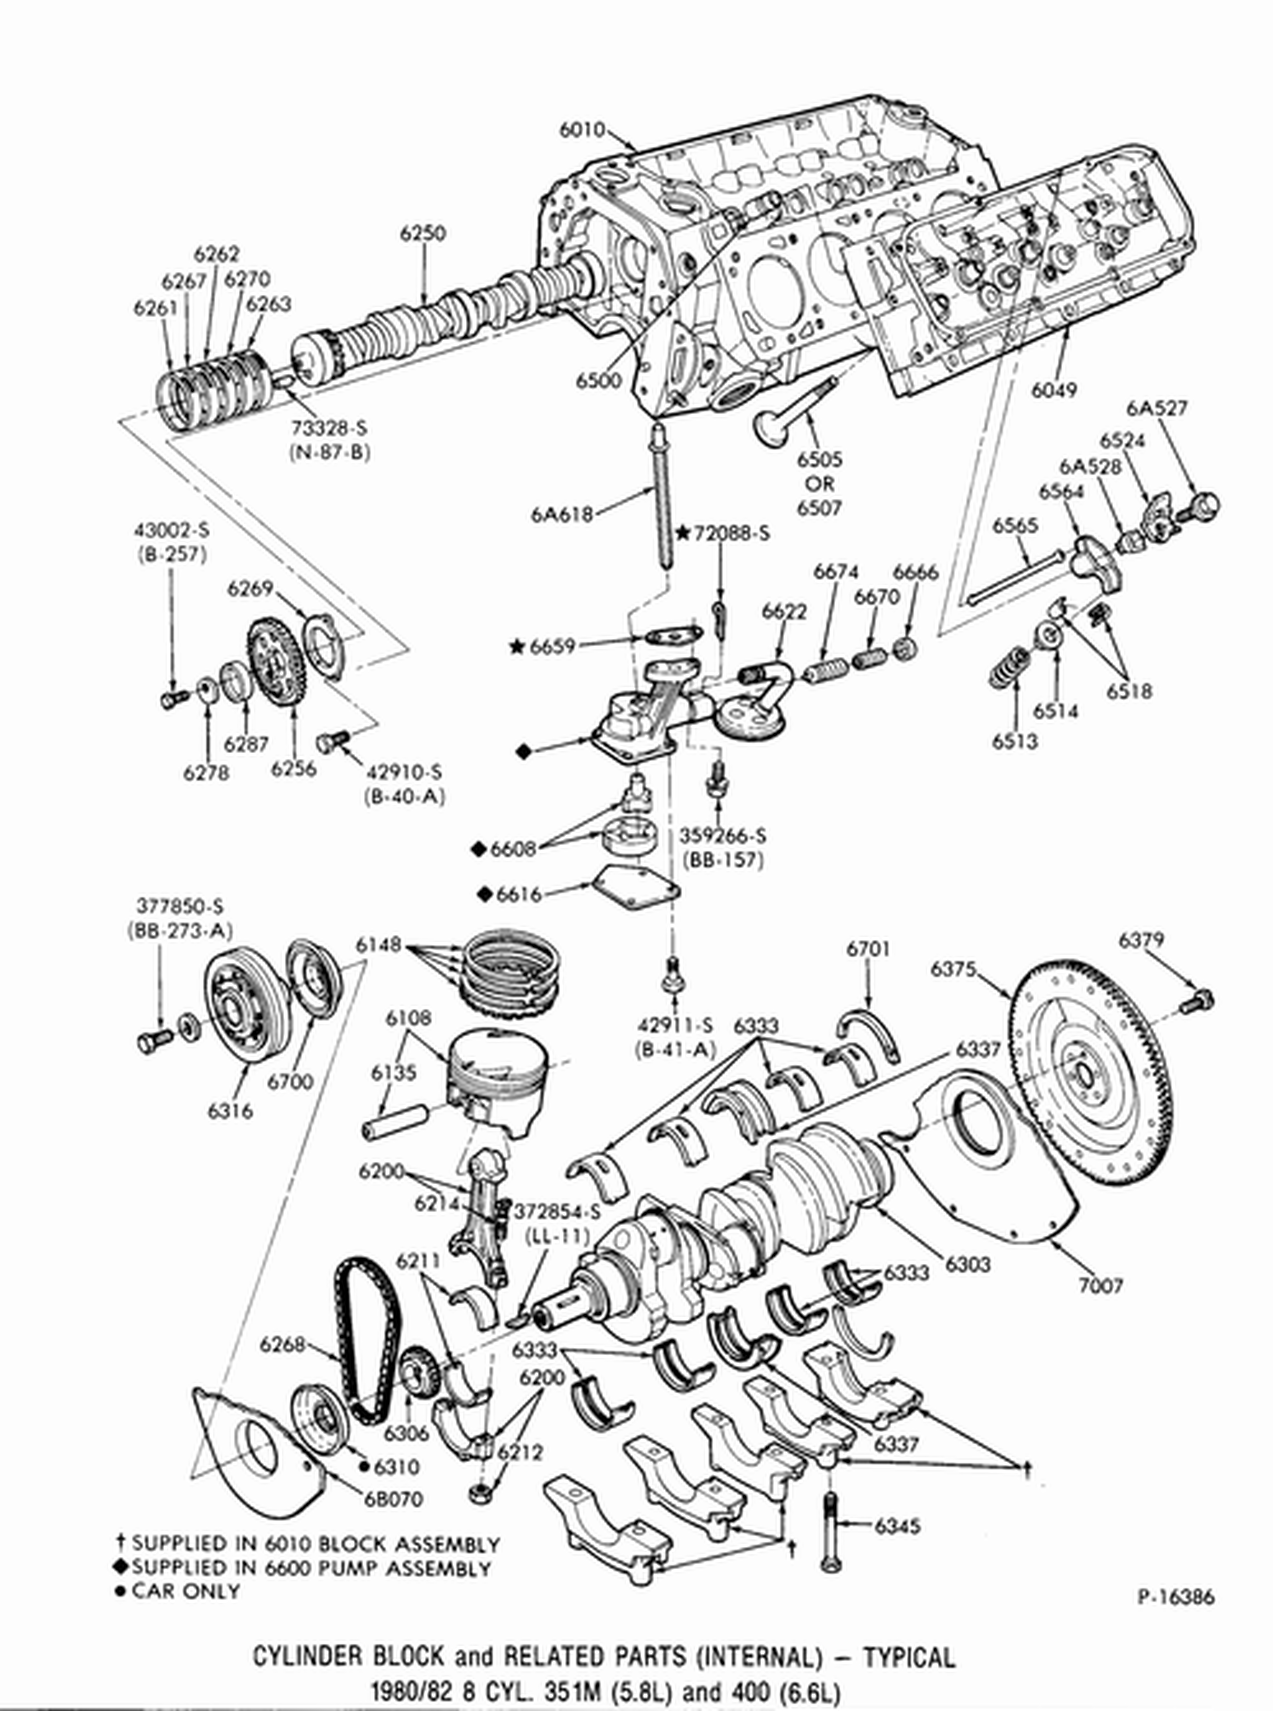 ford engine oiling system diagram exclusive circuit wiring diagram u2022 rh  internationalsportsoutlet co Wiring Diagram for 1972 Mustang 351 Cleveland  351 ...